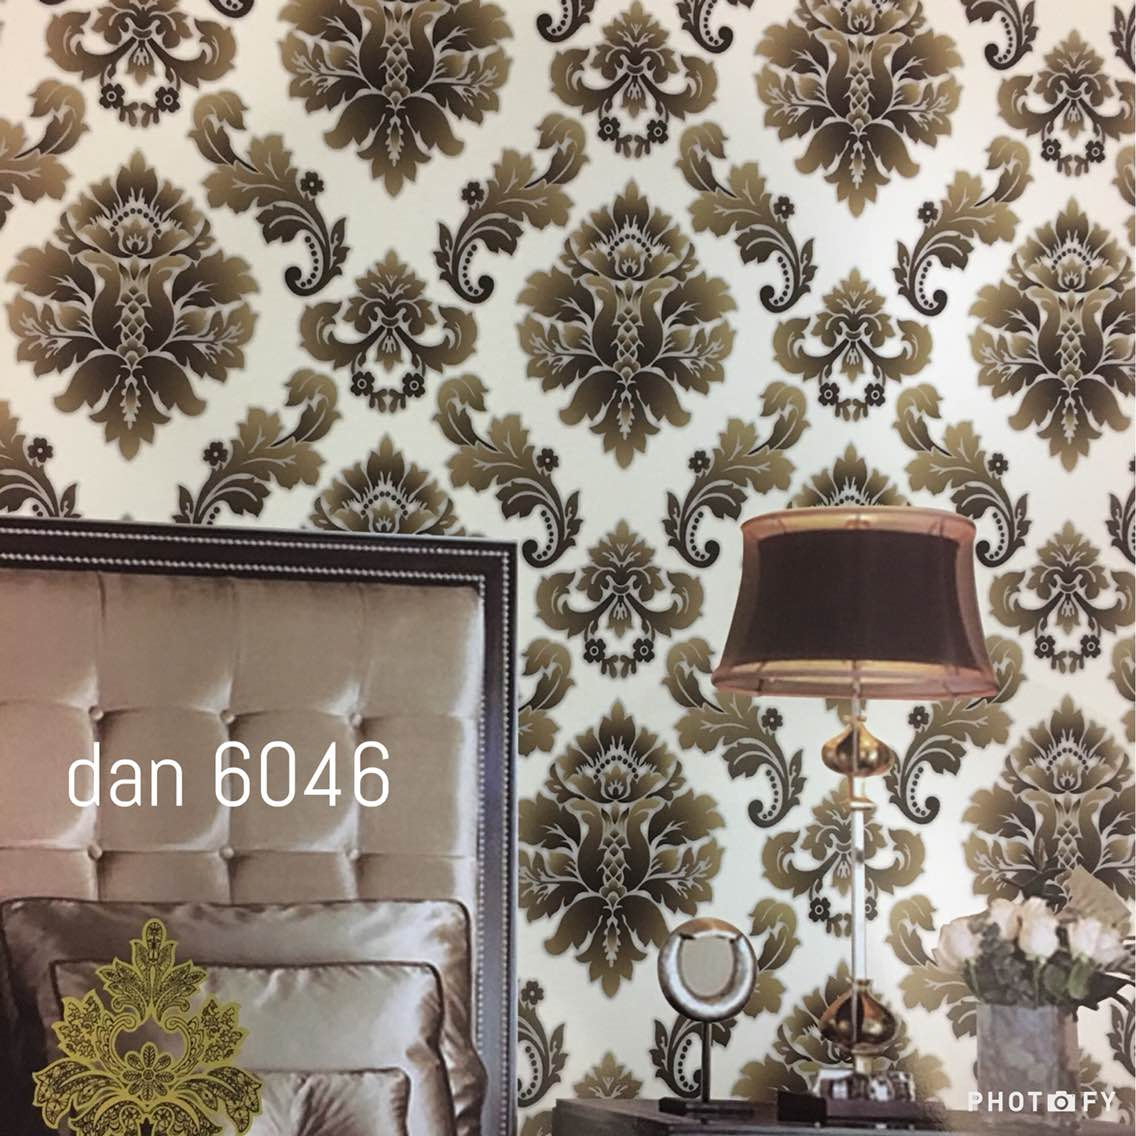 Damask Wallpaper for Drawing Room.   A Damask wallpaper, Brown Shade on cream base for your Bed room as well as for Drawing room.   A Daniel Wallpaper 6046 Wallpaper.  To buy call us  Wallparadise- Daniel Imported Wallpaper Supplier in India.